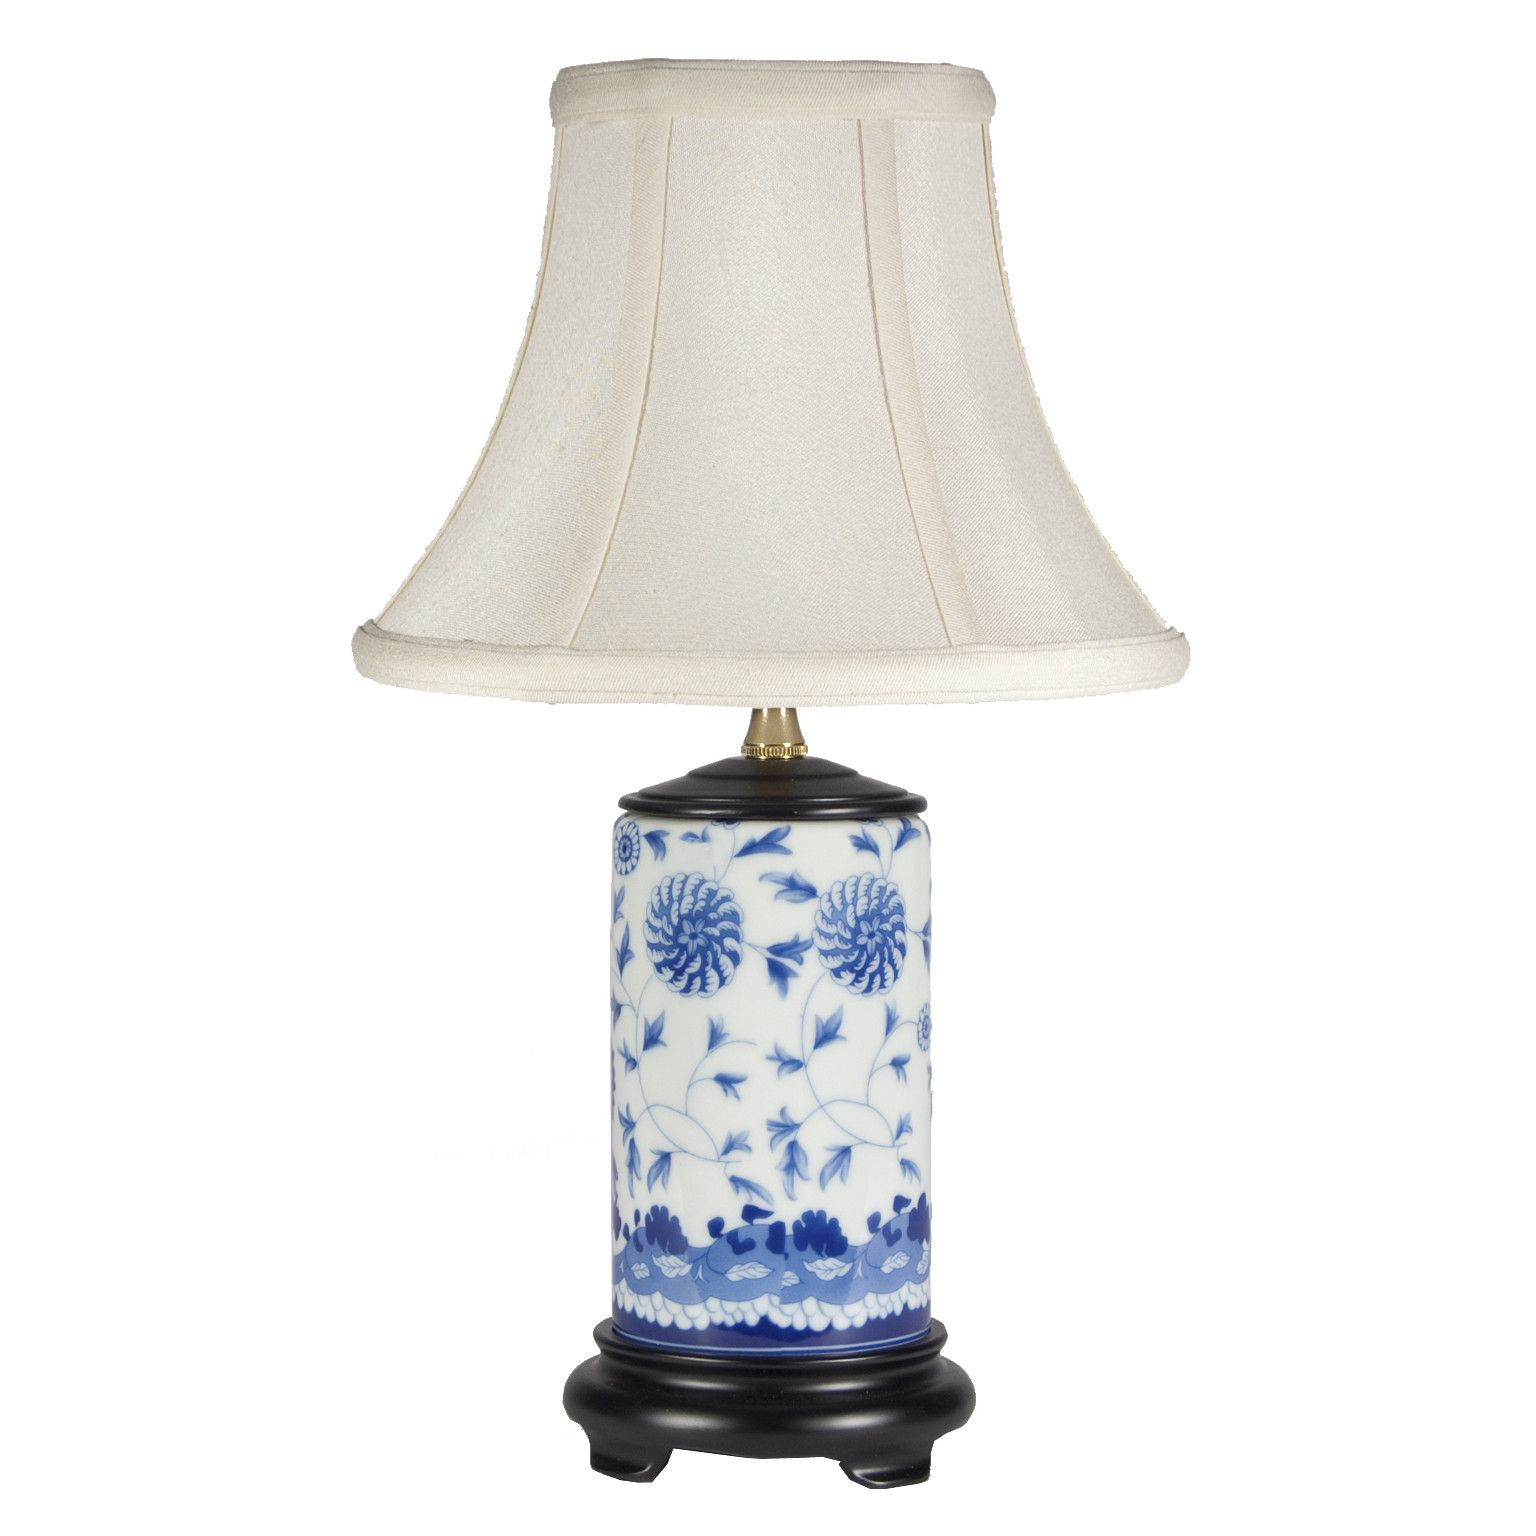 Small Traditional Blue White Porcelain Lamp